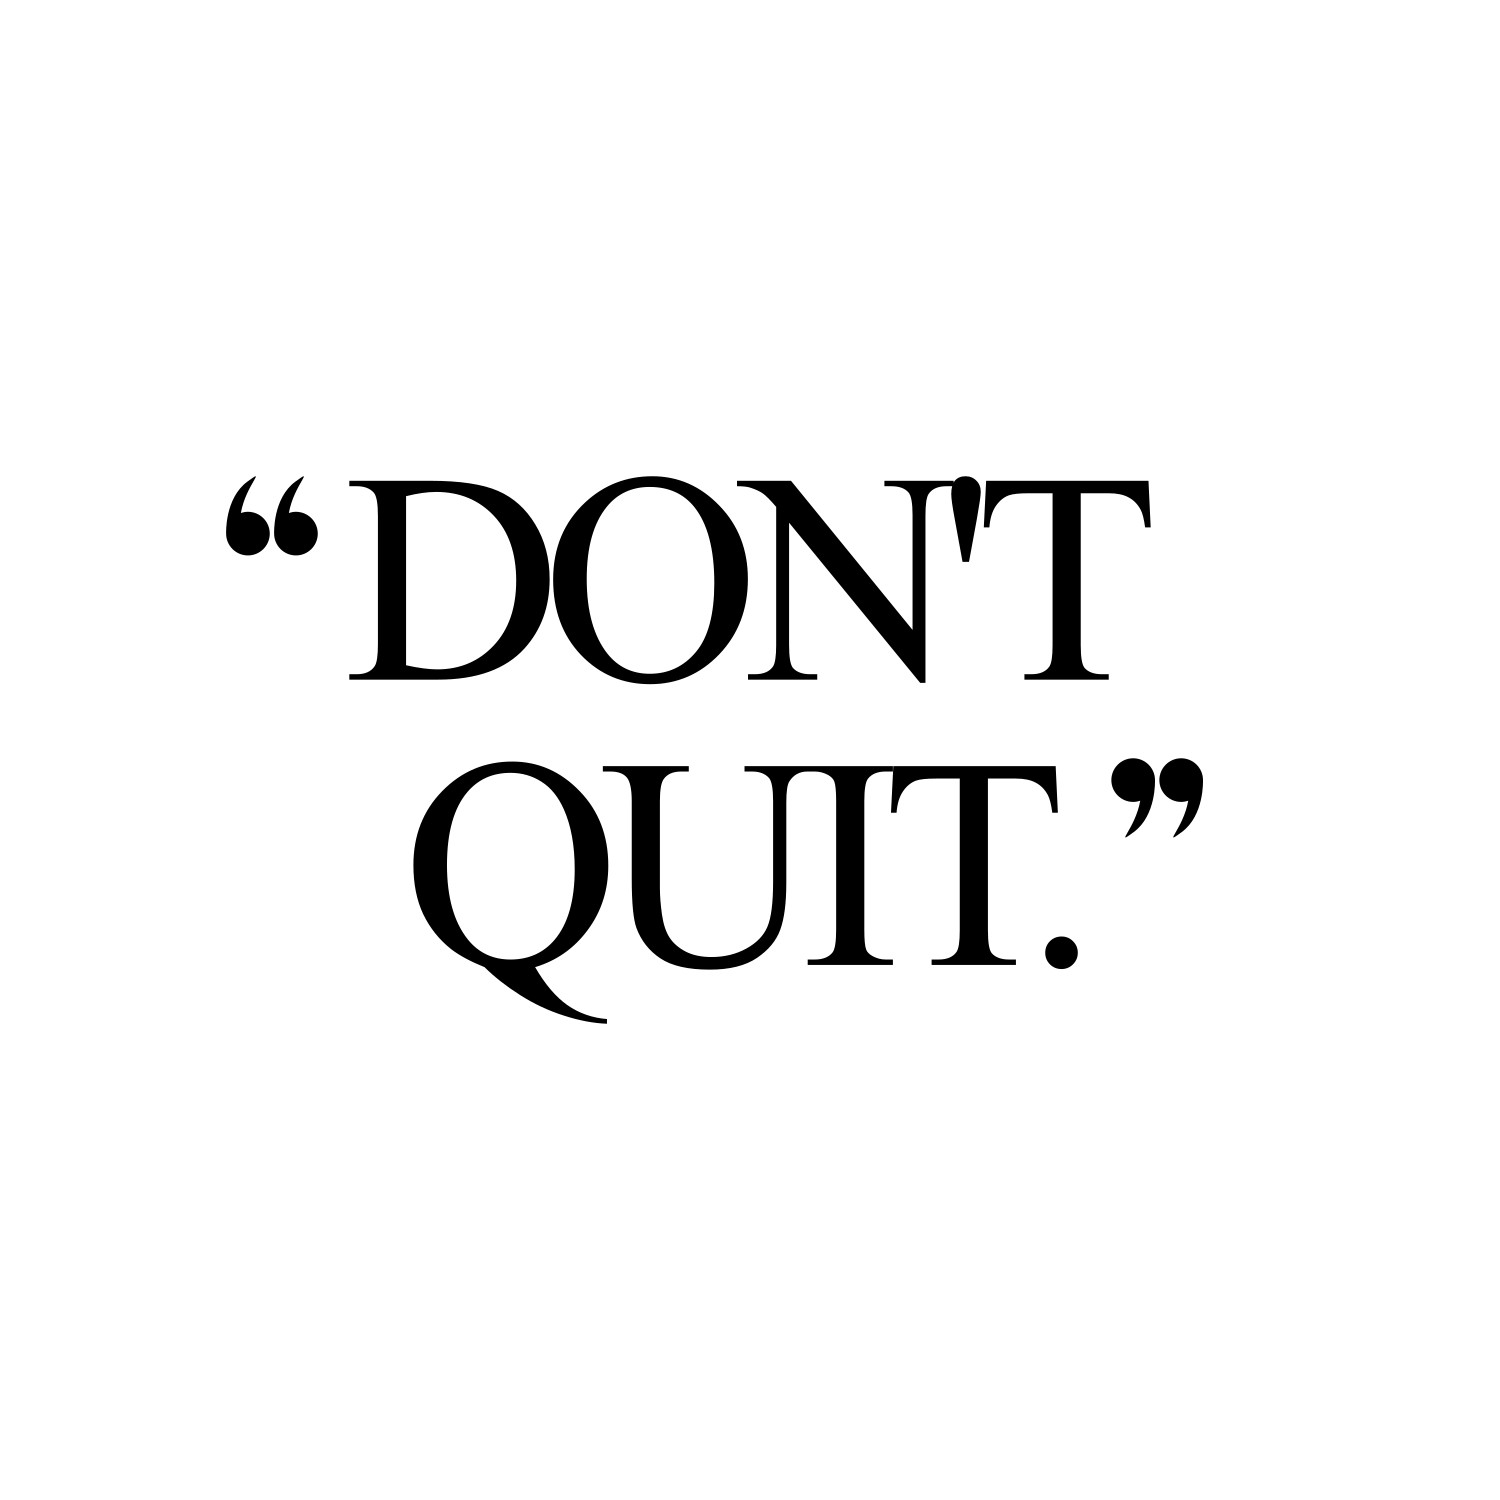 Don't quit! Browse our collection of motivational fitness and weight loss quotes and get instant exercise and training inspiration. Transform positive thoughts into positive actions and get fit, healthy and happy! https://www.spotebi.com/workout-motivation/dont-quit/